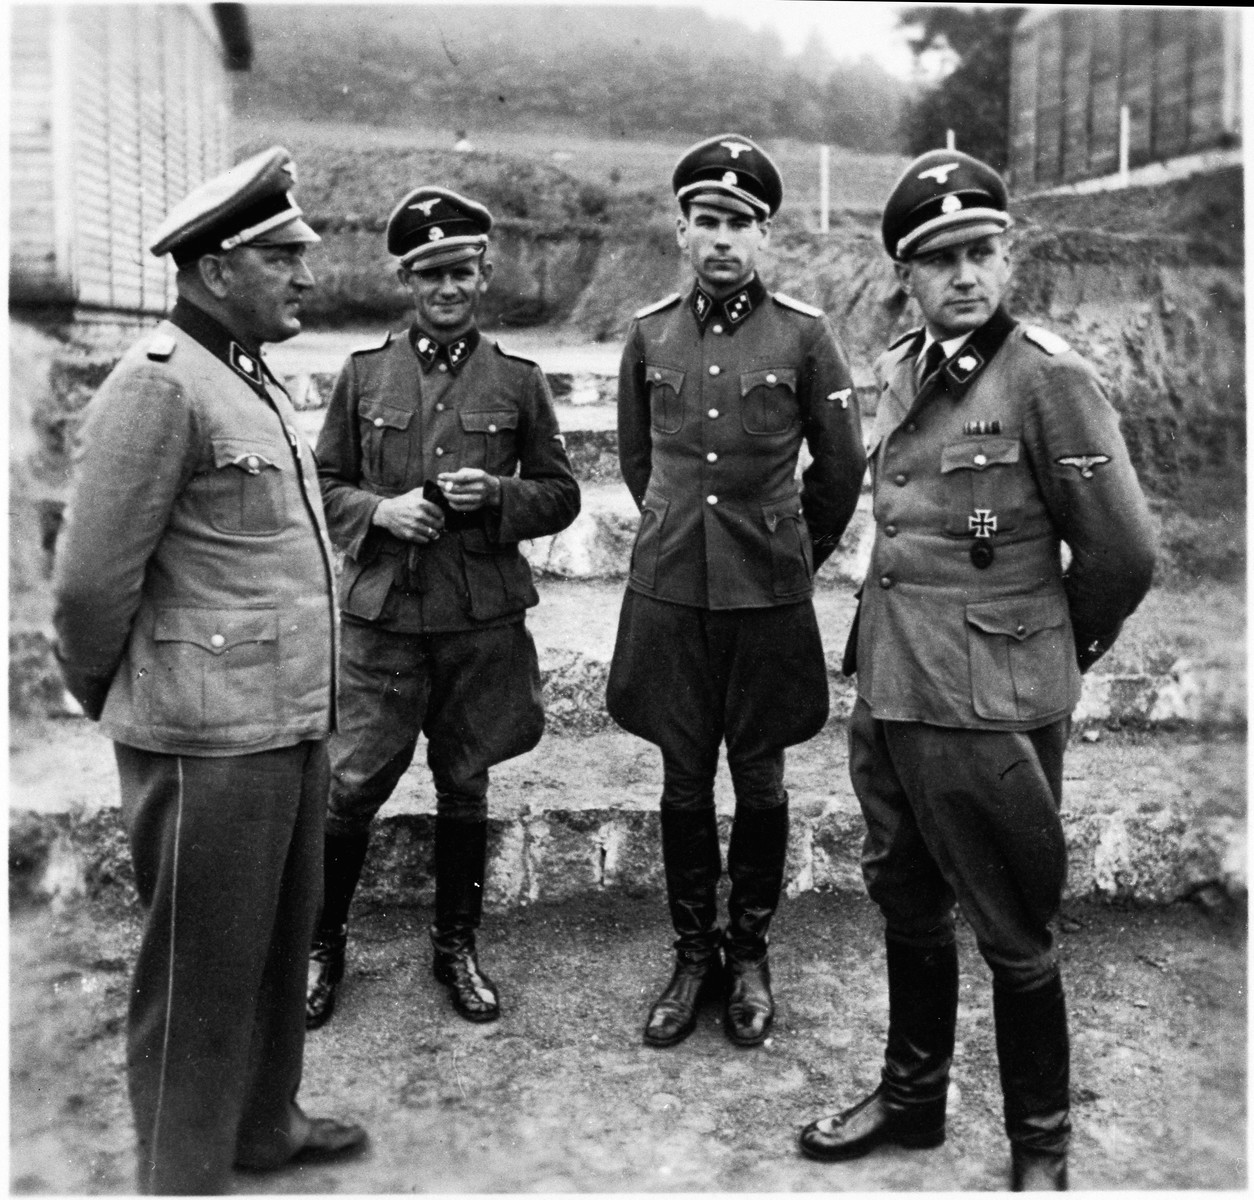 Group portait of four SS officers at the Gross-Rosen concentration camp.  Arthur Roedl is standing on the far let.  Next to him is Anton Thumann. An inscription on the back identifies one of the other two men as SS-Obersturmfuehrer Drosenhofer.